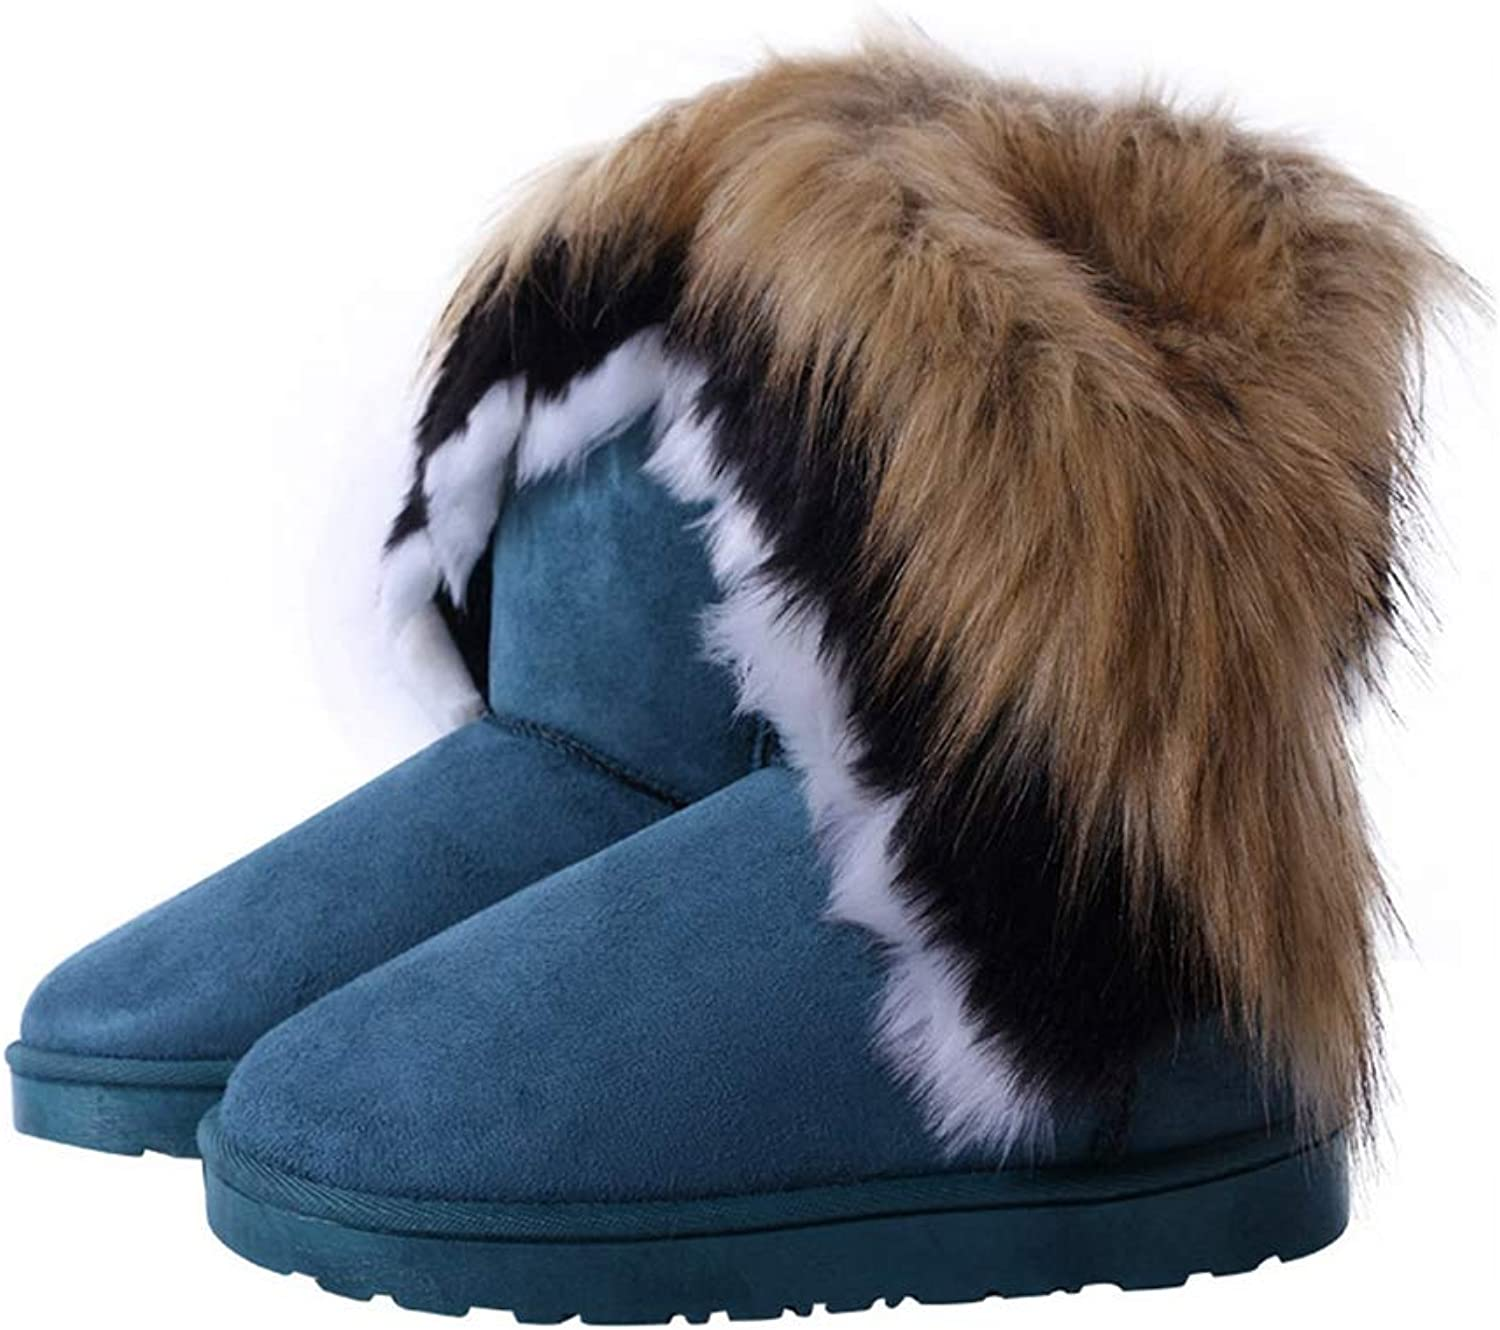 T-JULY Women's Snow Boots Faux Fur Warm Flat shoes Tassels Edging Footwear Female Winter Sewing Mid Calf shoes